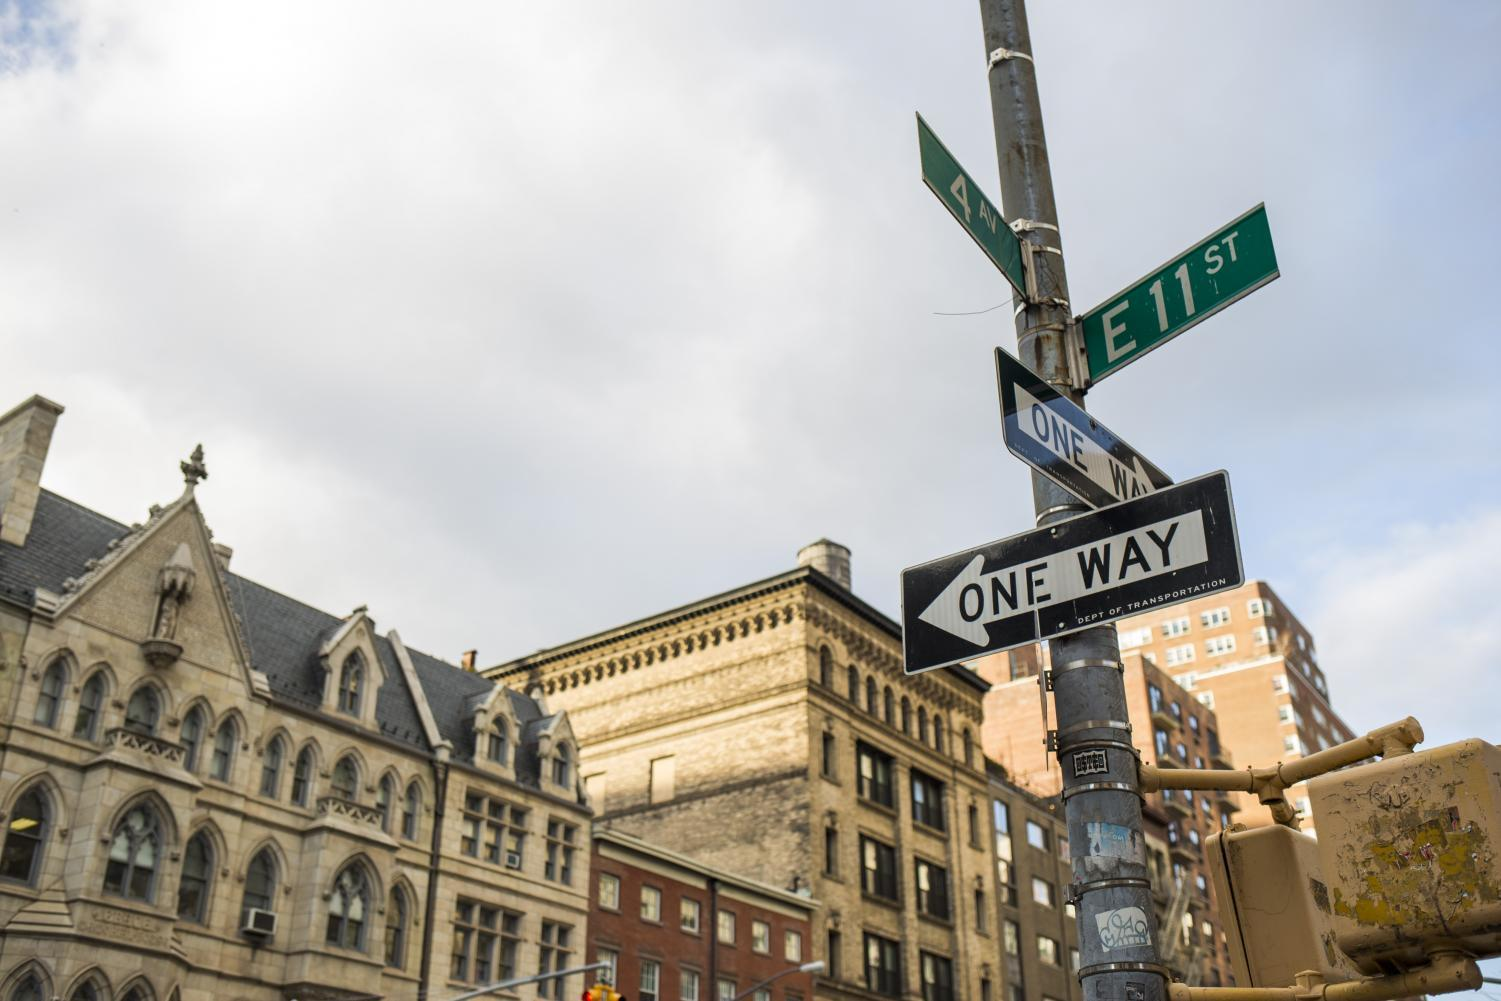 The street sign on the corner of 11th Street and Fourth Avenue.